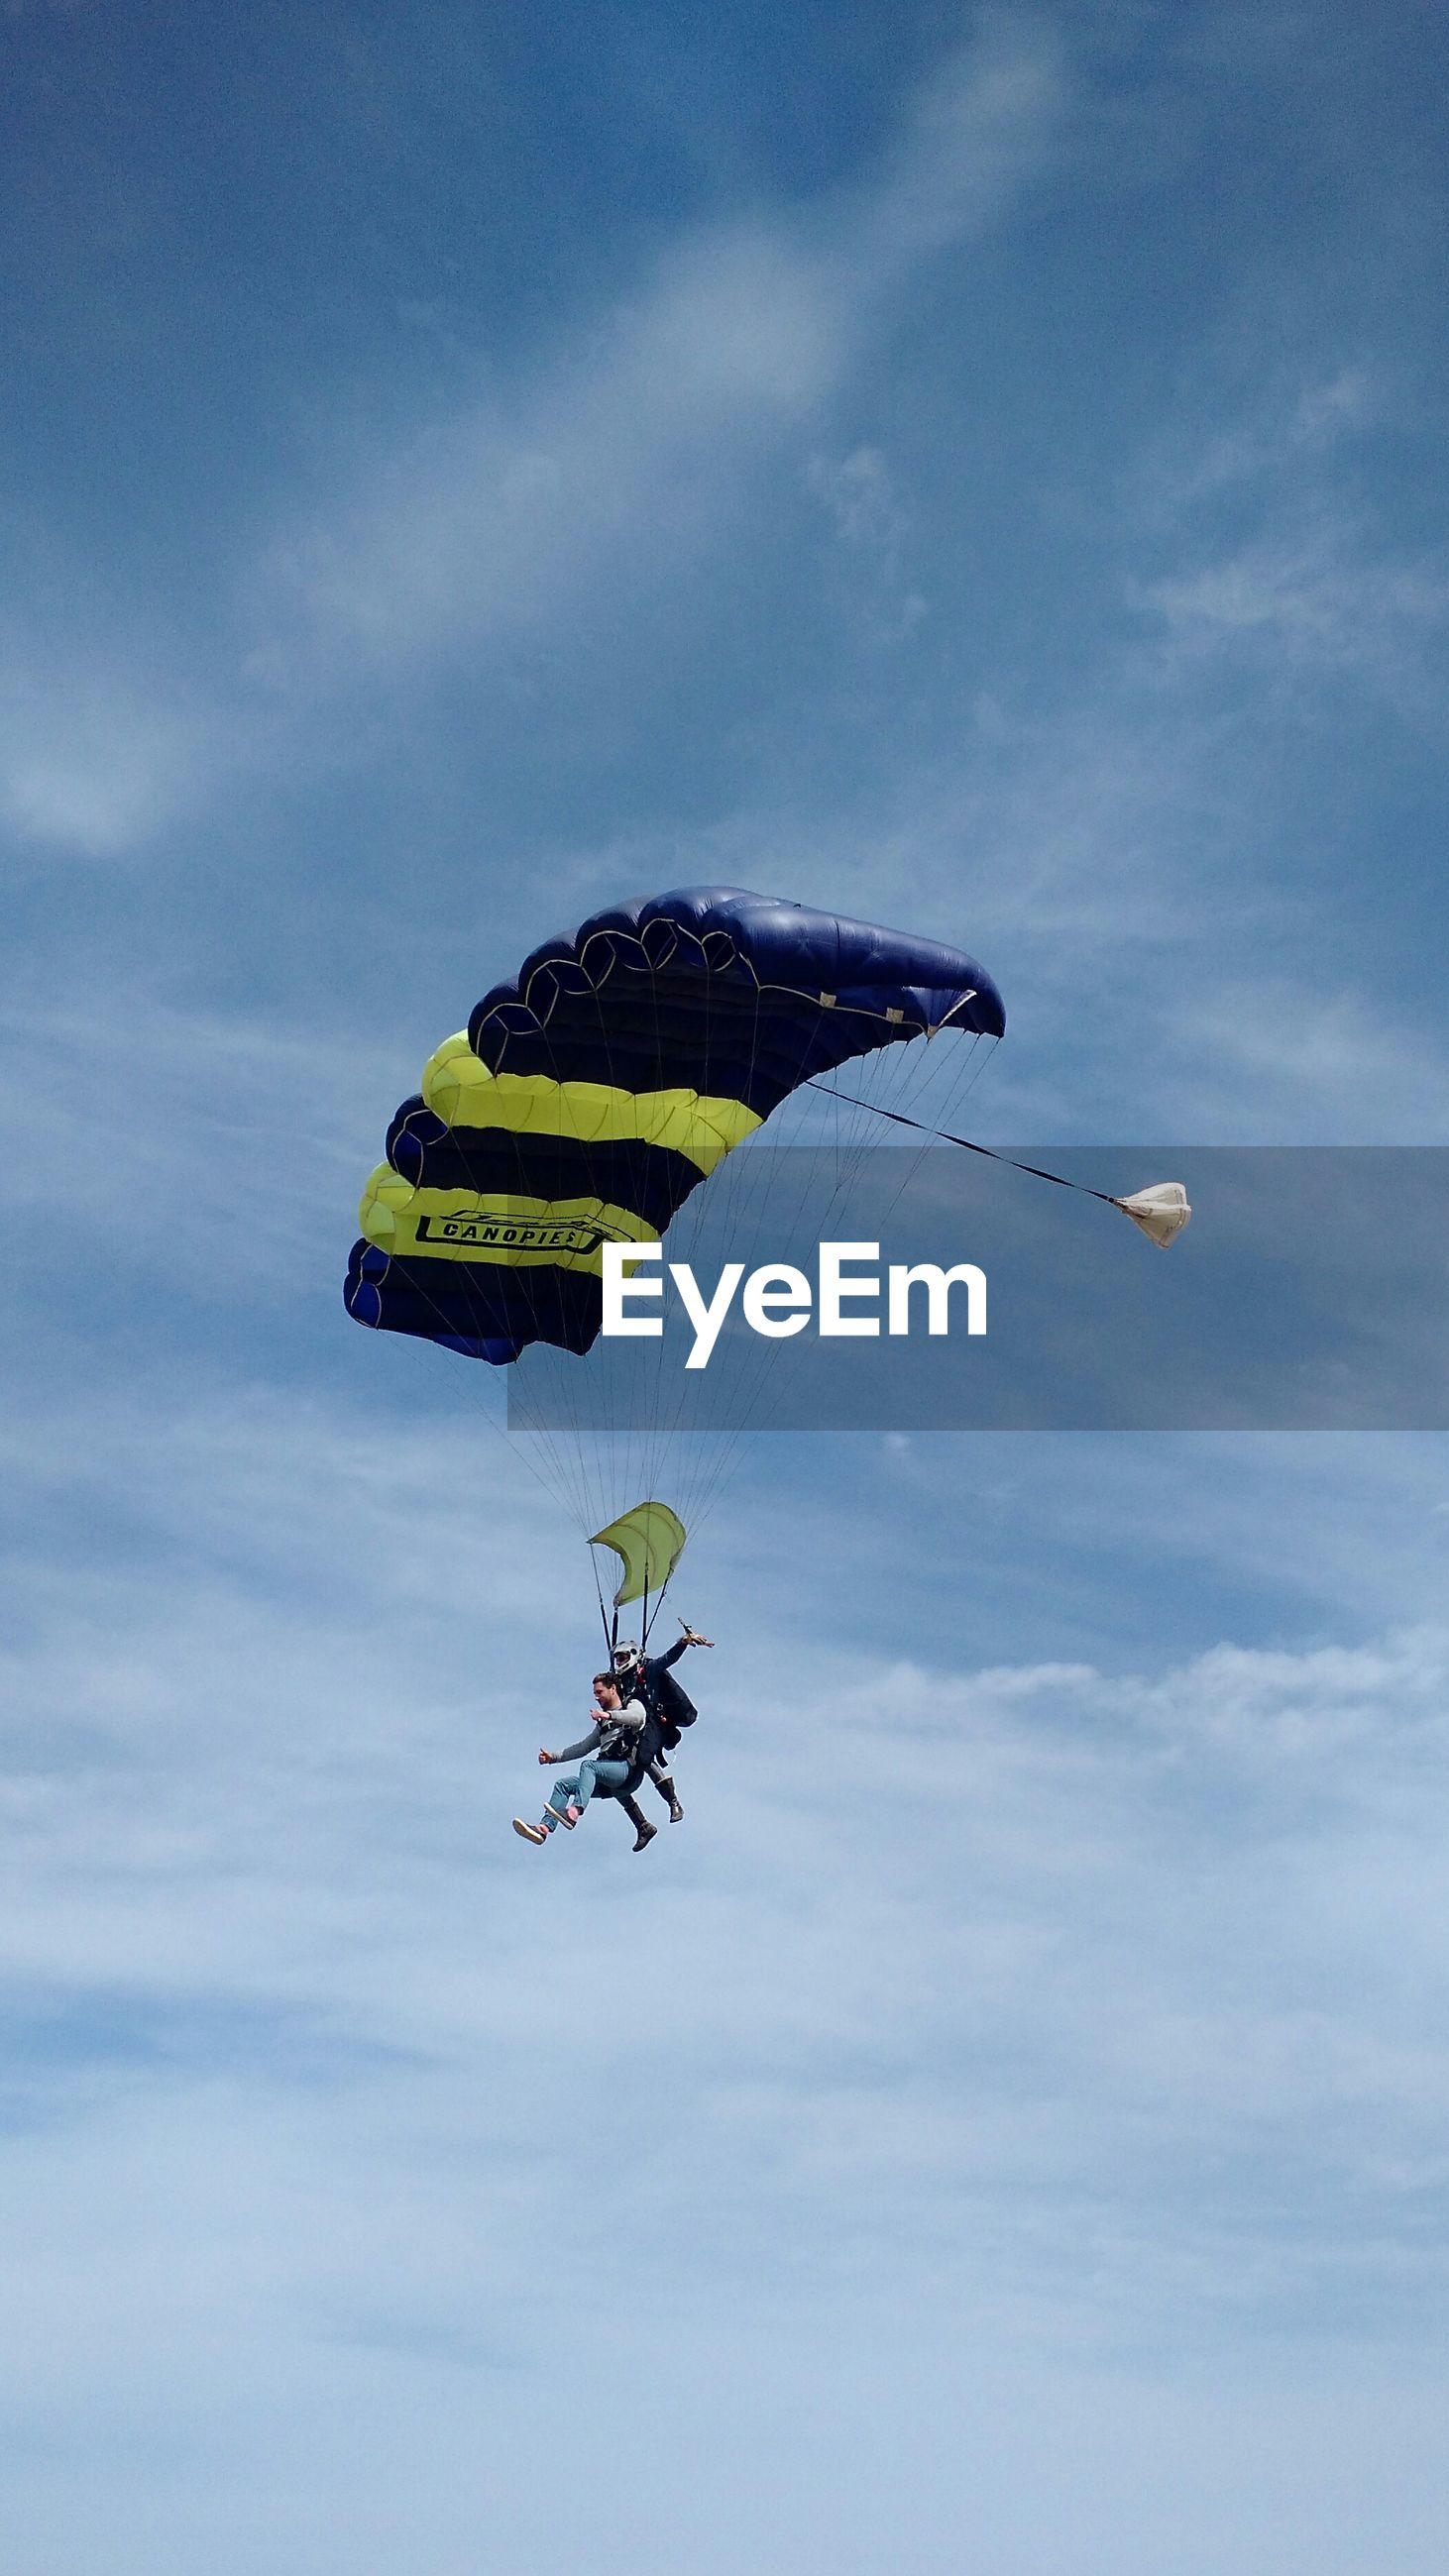 transportation, sky, low angle view, mode of transport, cloud - sky, flying, mid-air, extreme sports, leisure activity, adventure, parachute, cloudy, travel, on the move, cloud, text, air vehicle, day, unrecognizable person